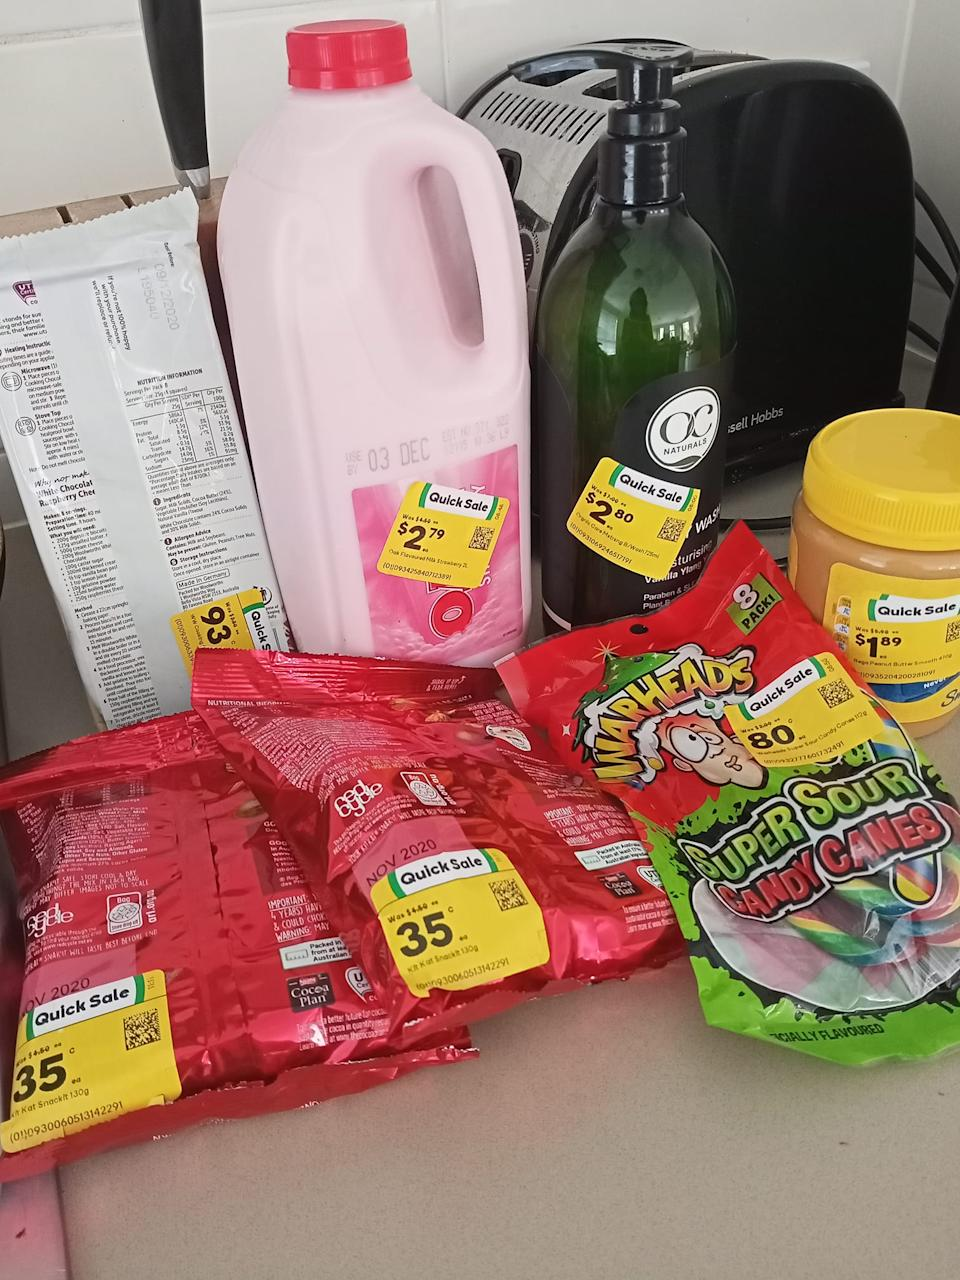 Shopper's Woolworths haul for less than $10 shown.